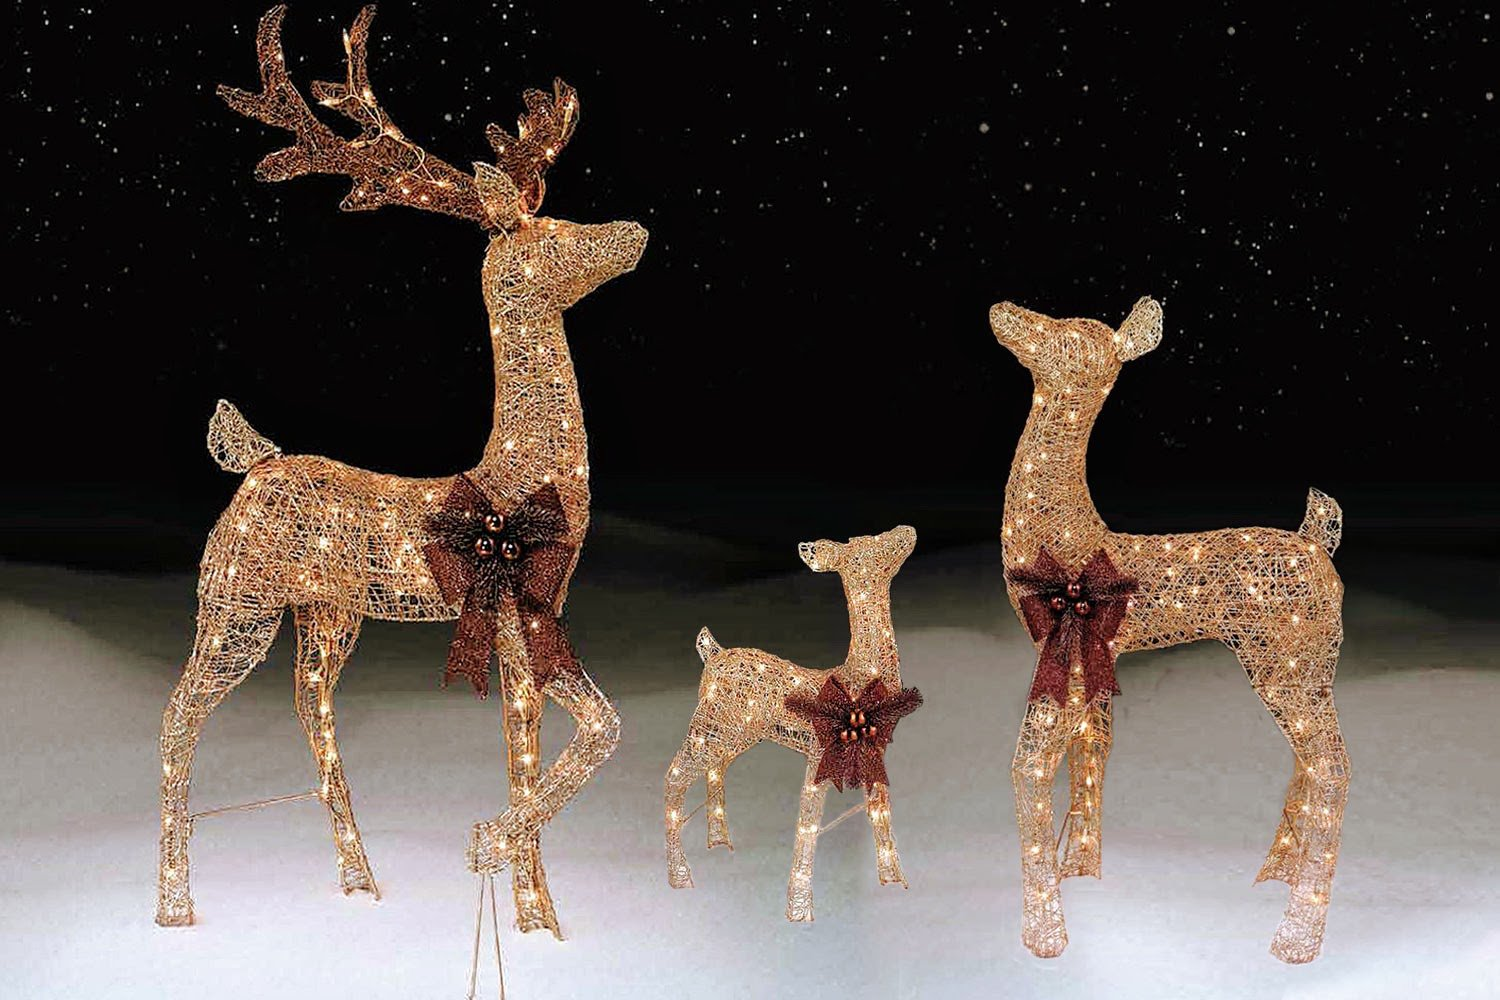 3 piece Pre-lit Outdoor LIGHTED REINDEER FAMILY, CHAMPAGNE GOLD Lawn Decoration Set - Includes BUCK, DOE, and BABY FAWN Yard Deer Sculpture Ornaments by Morning Star Market